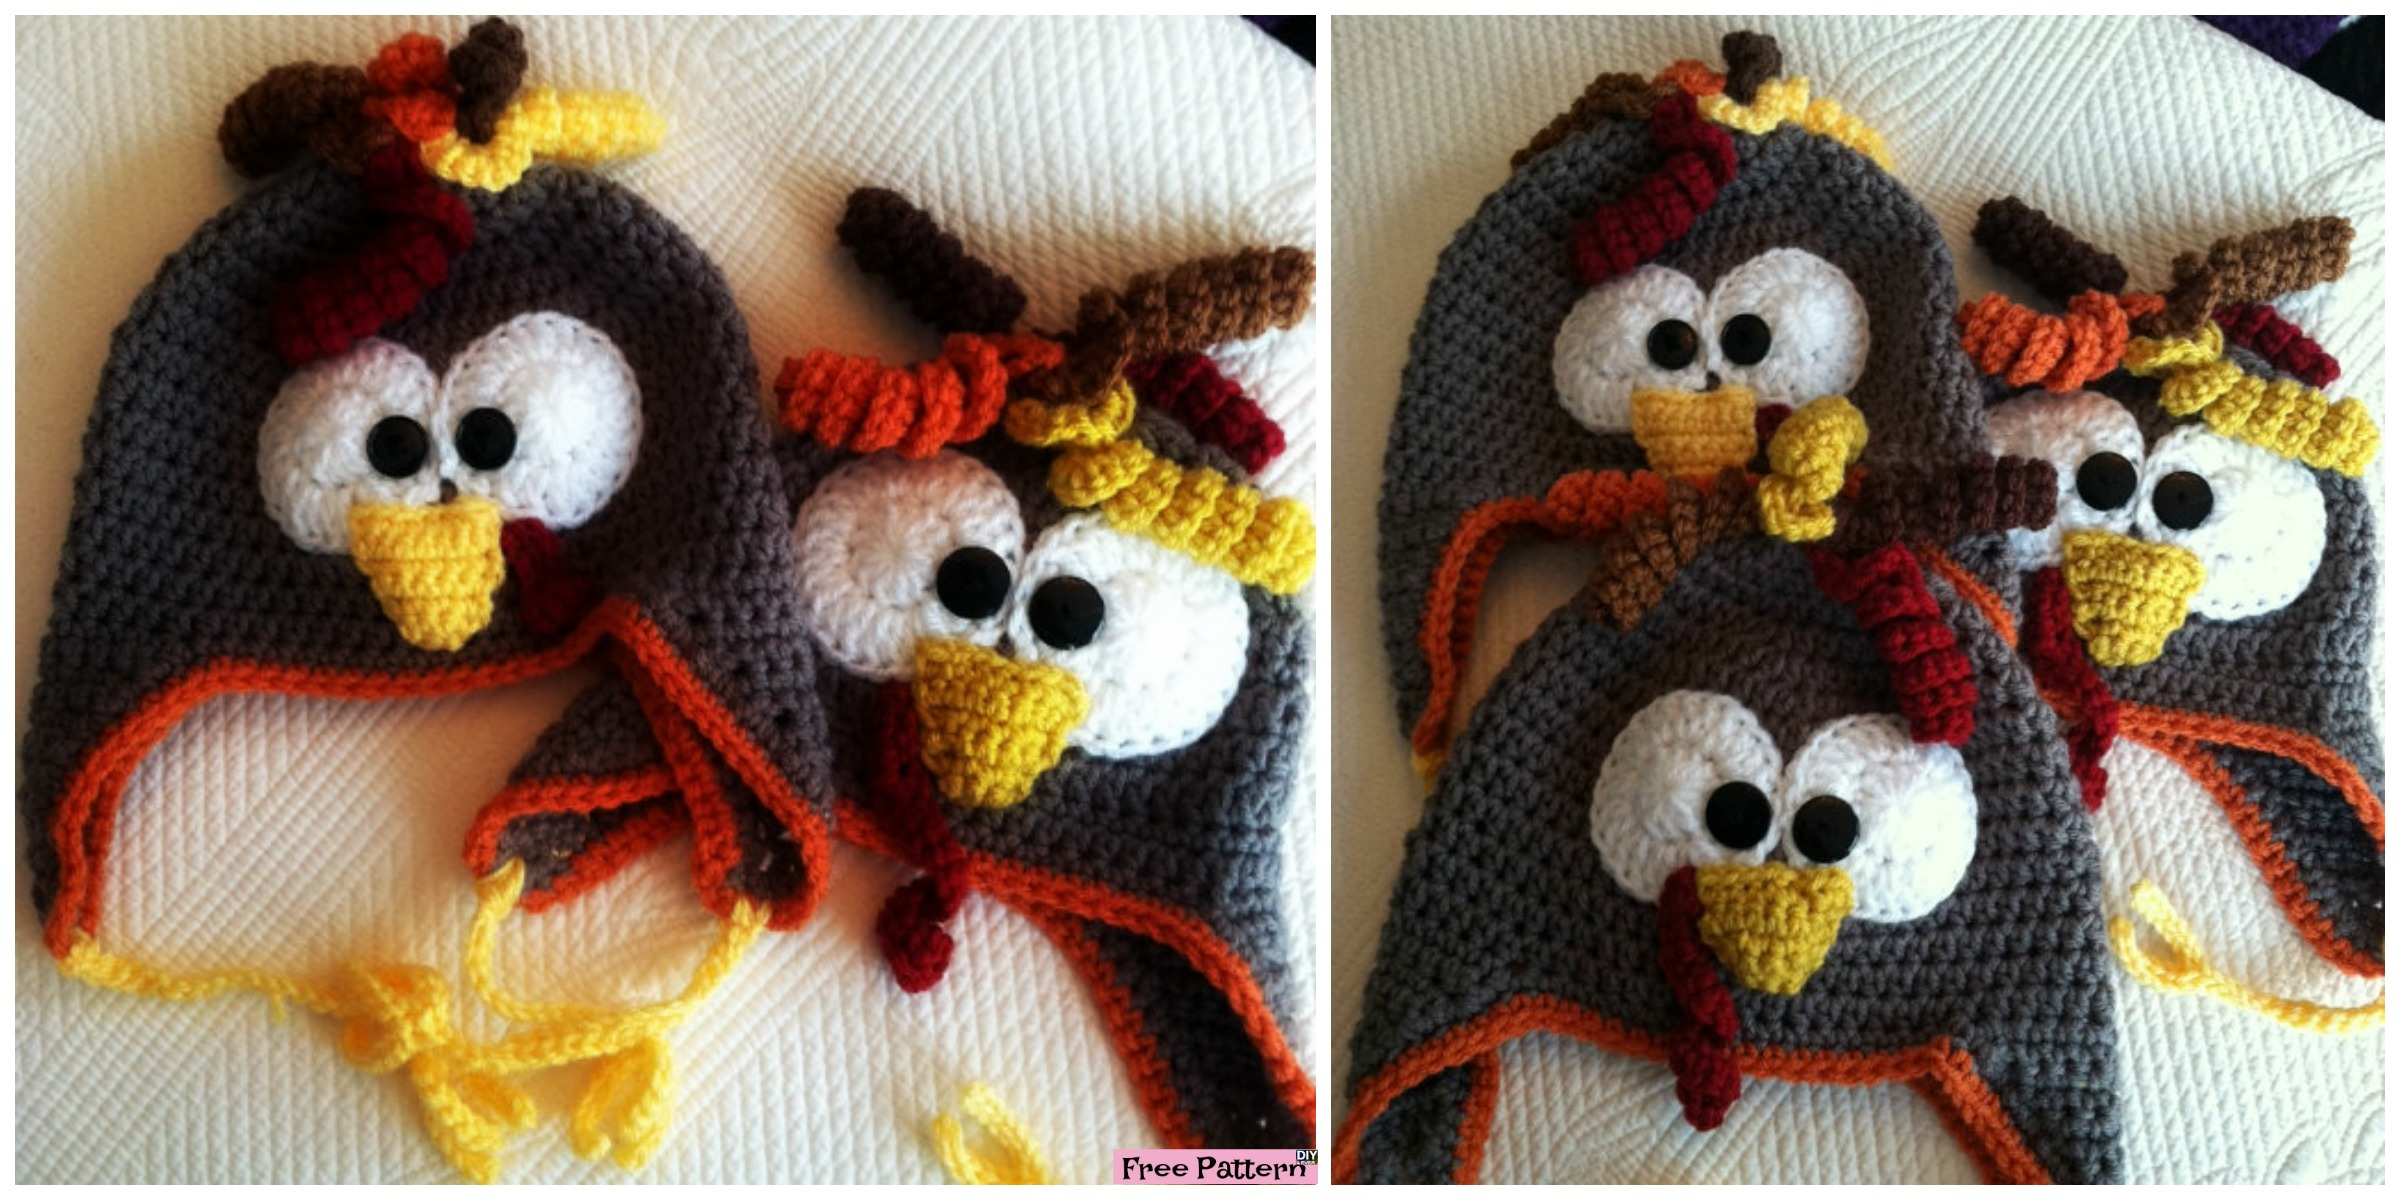 Adorable Crochet Turkey Earflap Hat – Free Pattern